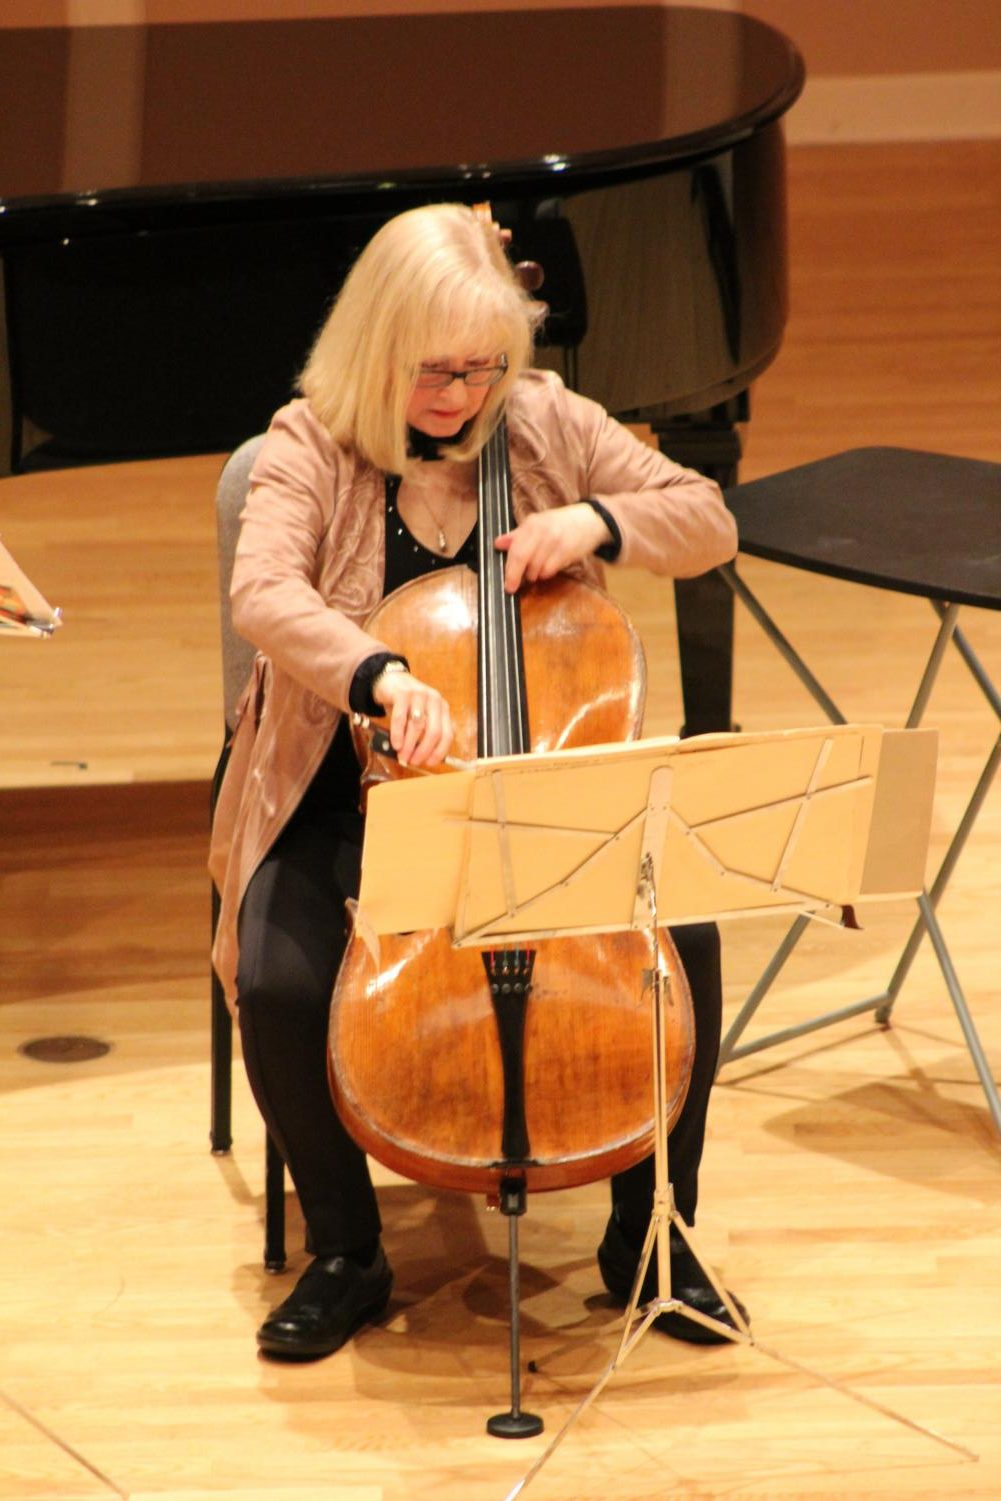 Janet Horvath plays the cello during key moments of the presentation.